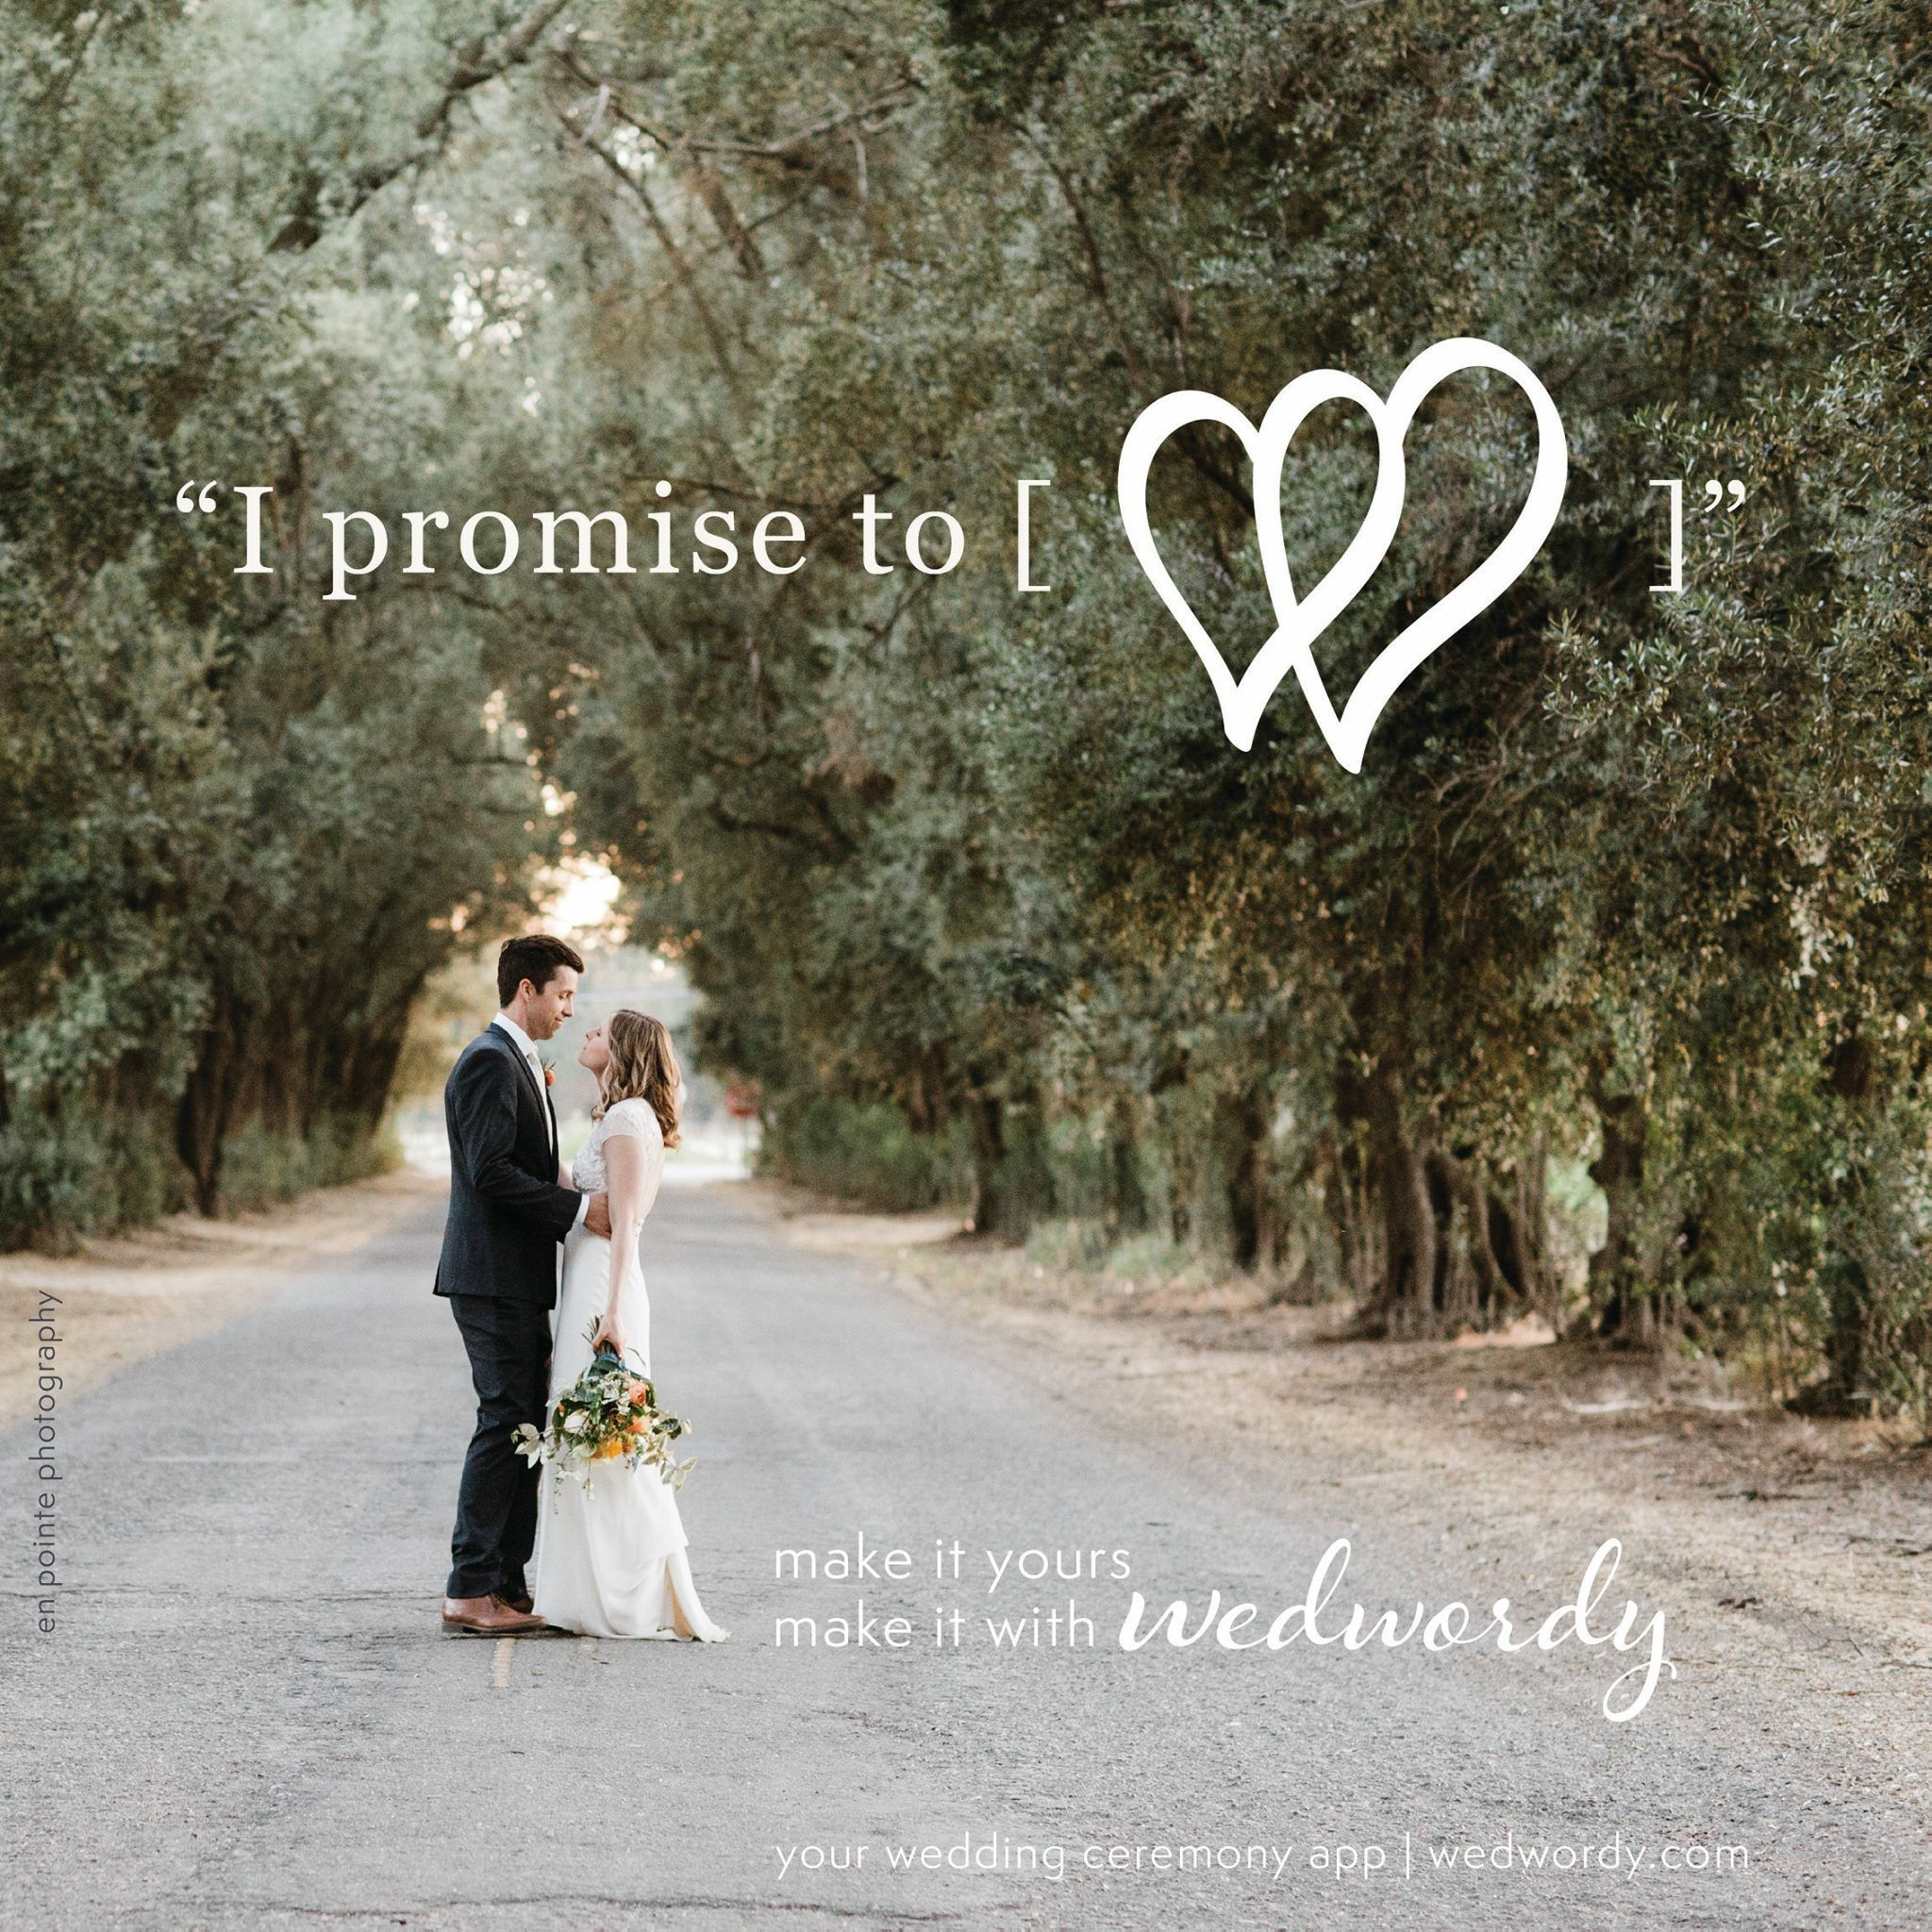 Write your own Personal Vows with Wedwordy.